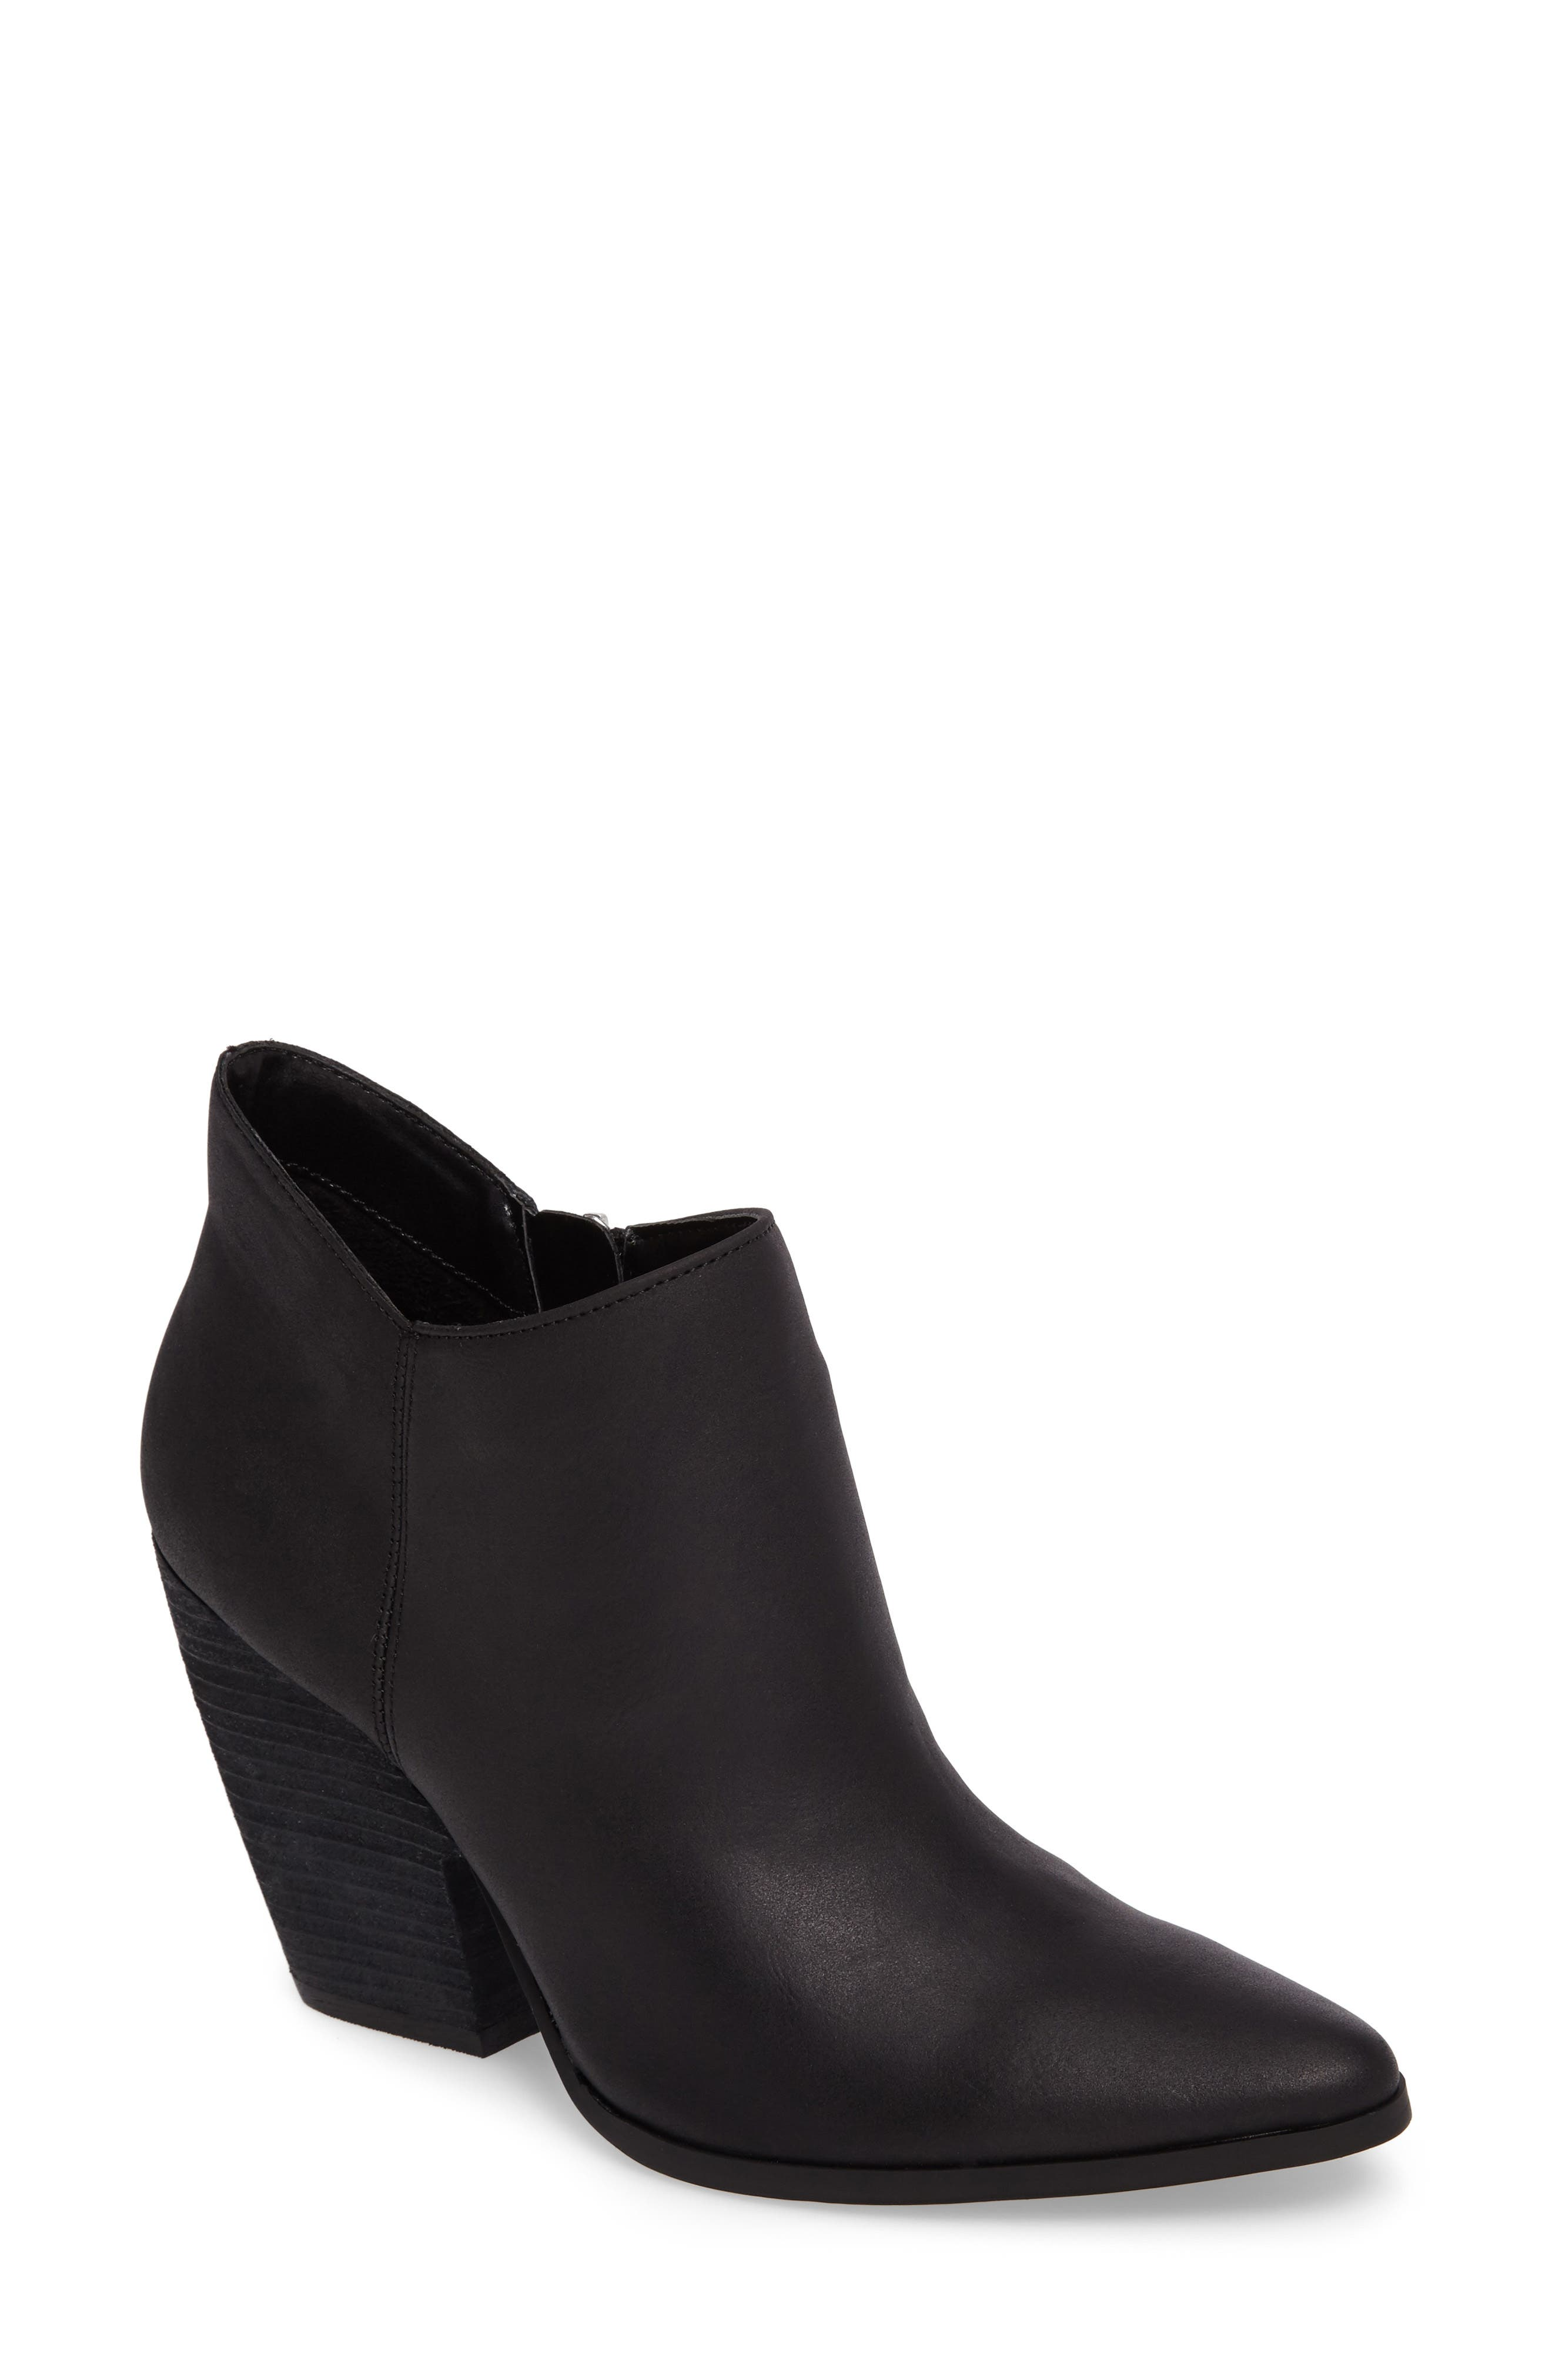 Natasha Bootie,                             Main thumbnail 1, color,                             Black